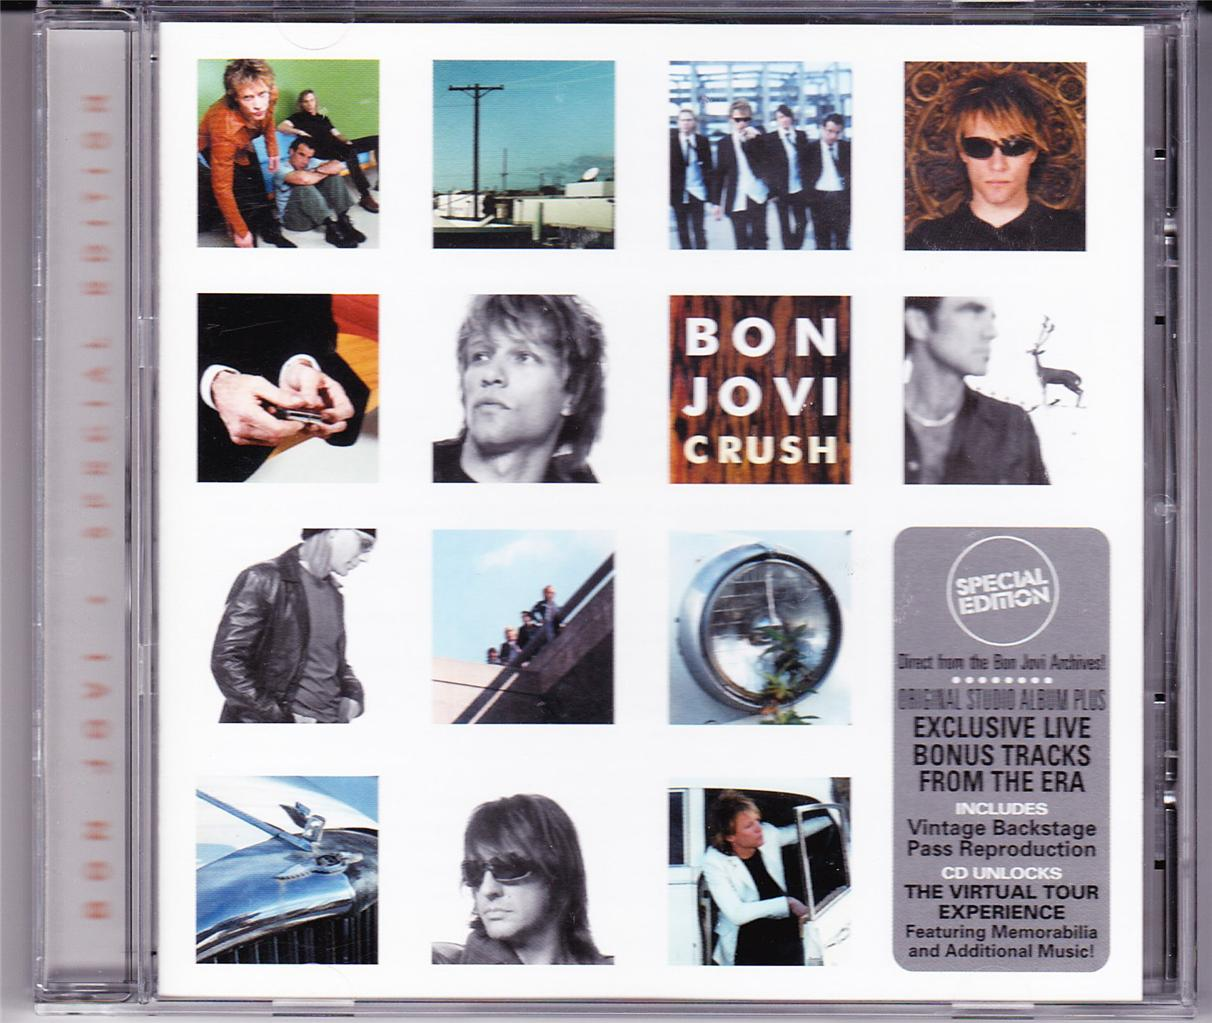 BON-JOVI-ORIG-OZ-10-CD-CRUSH-SPECIAL-EDITION-REP-BACKSTAGE-PASS